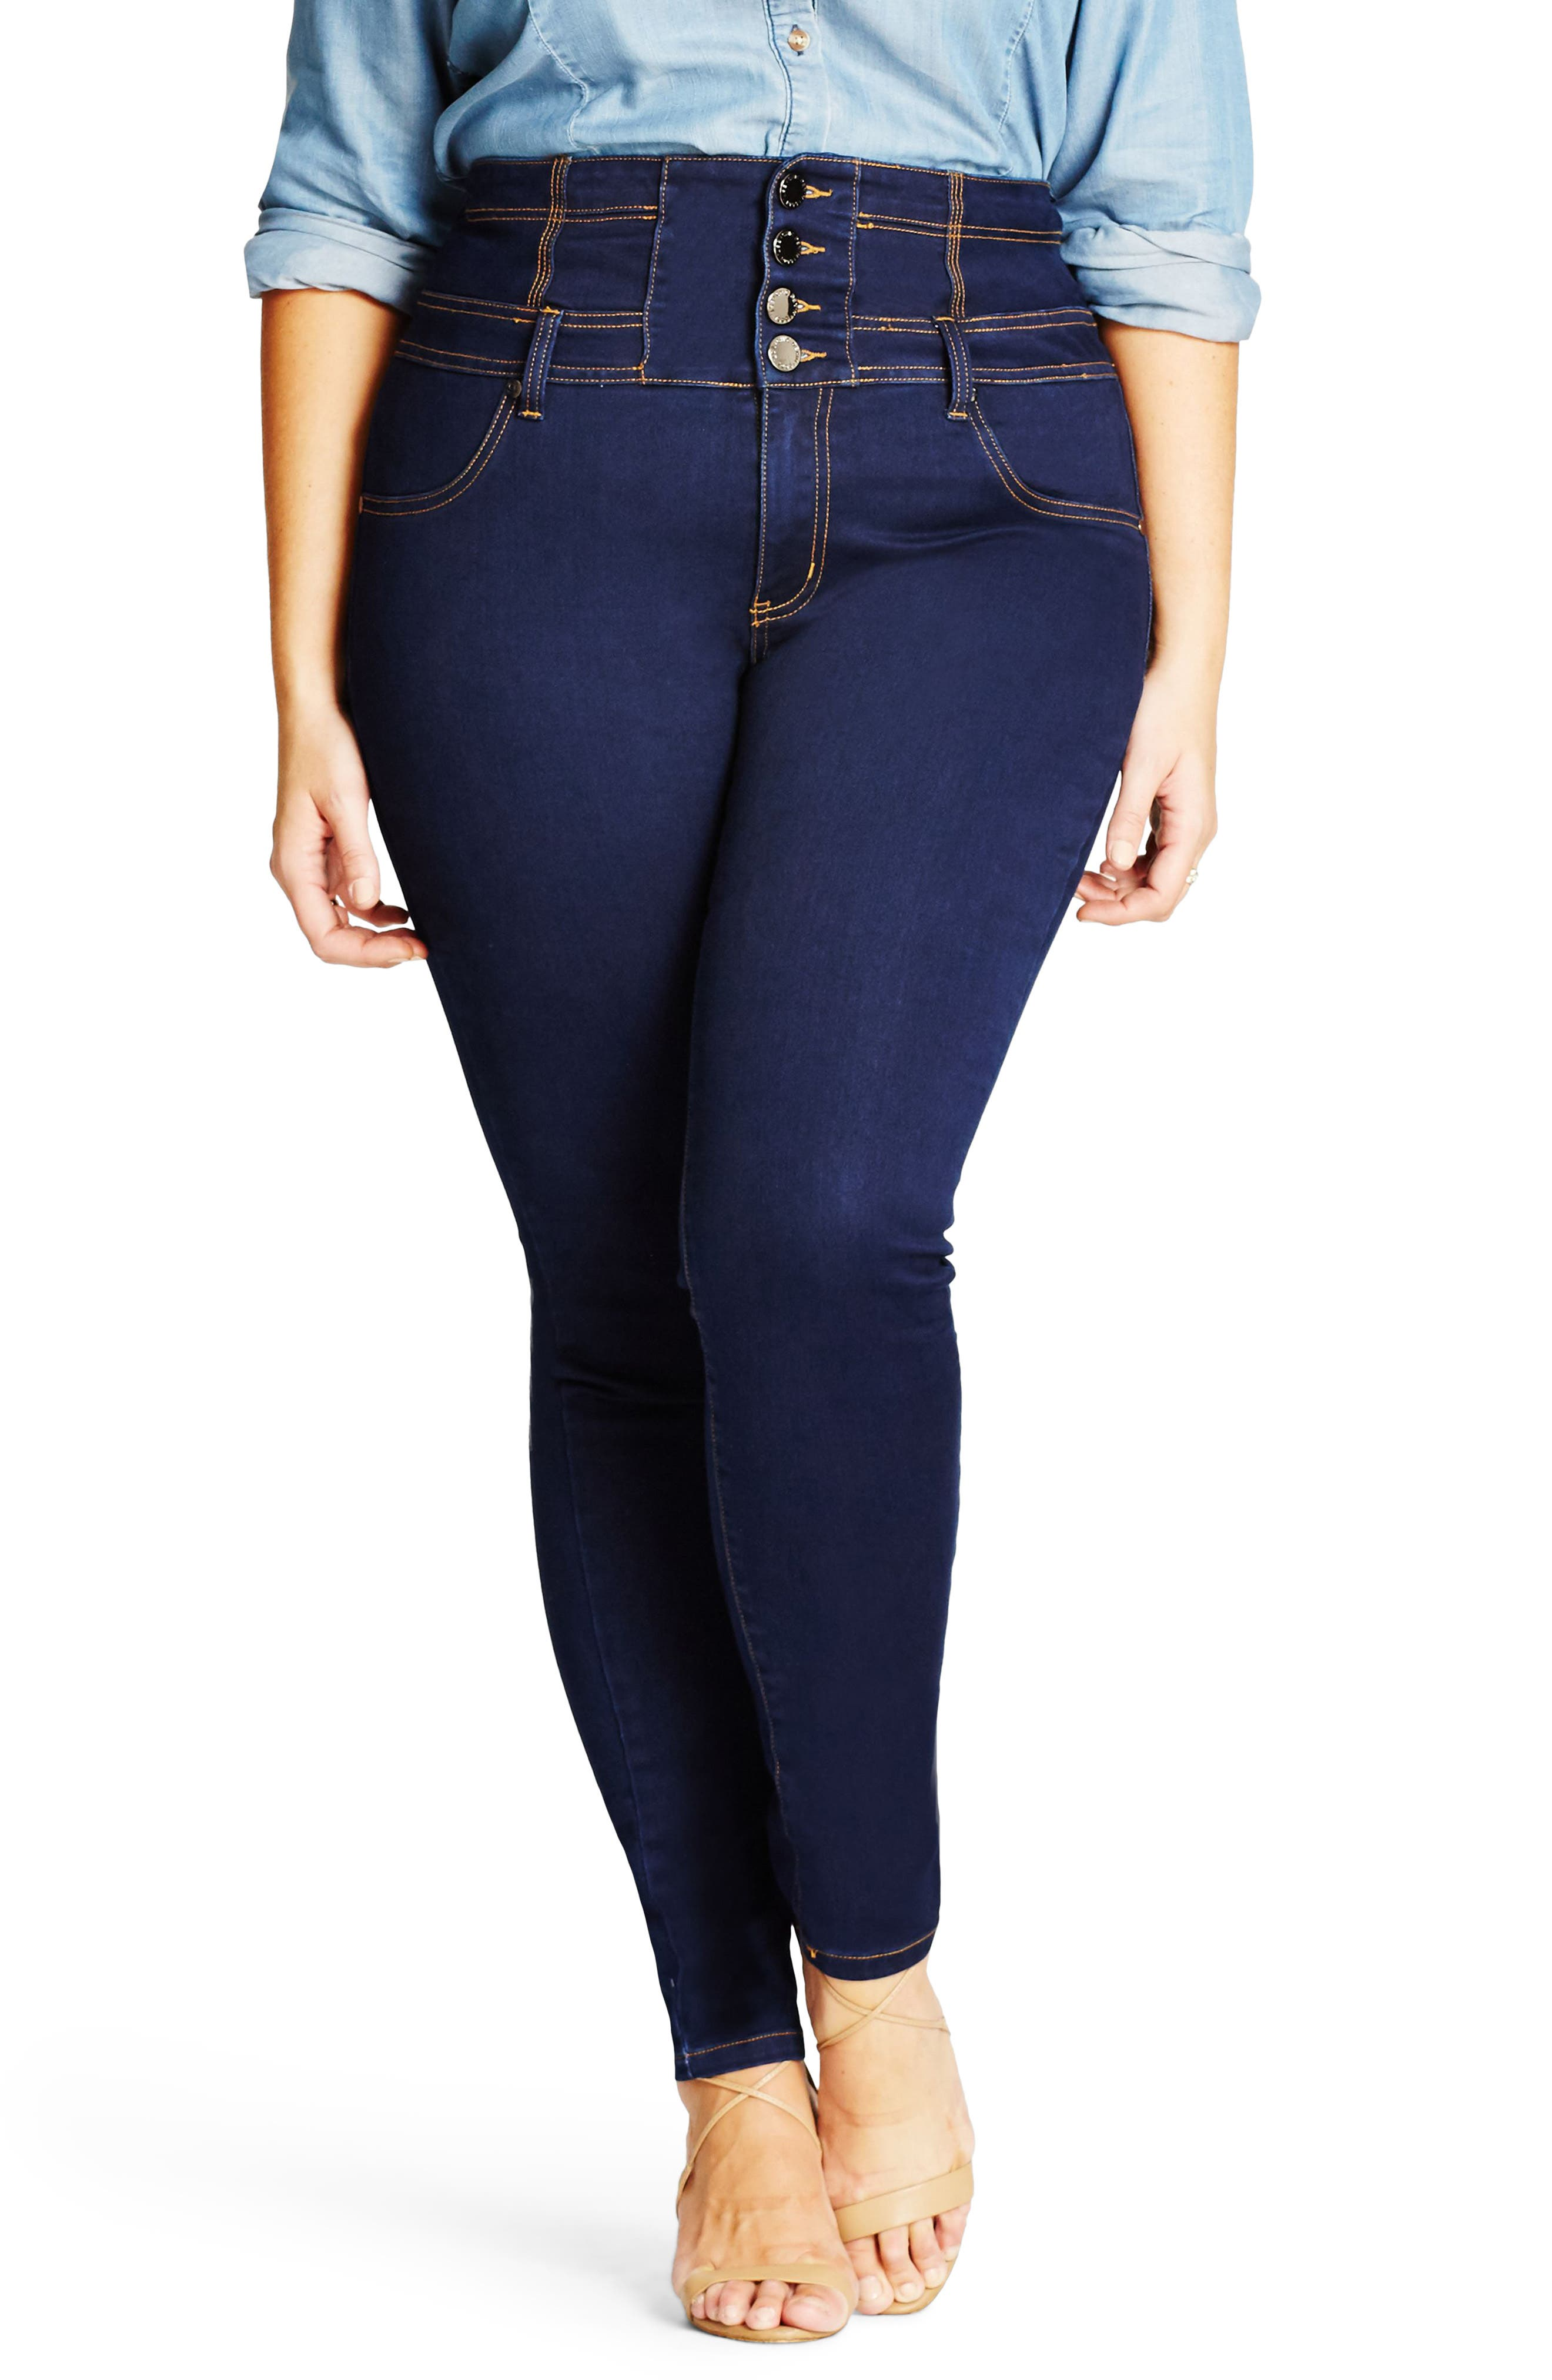 Main Image - City Chic Harley Corset Waist Stretch Skinny Jeans (Plus Size)